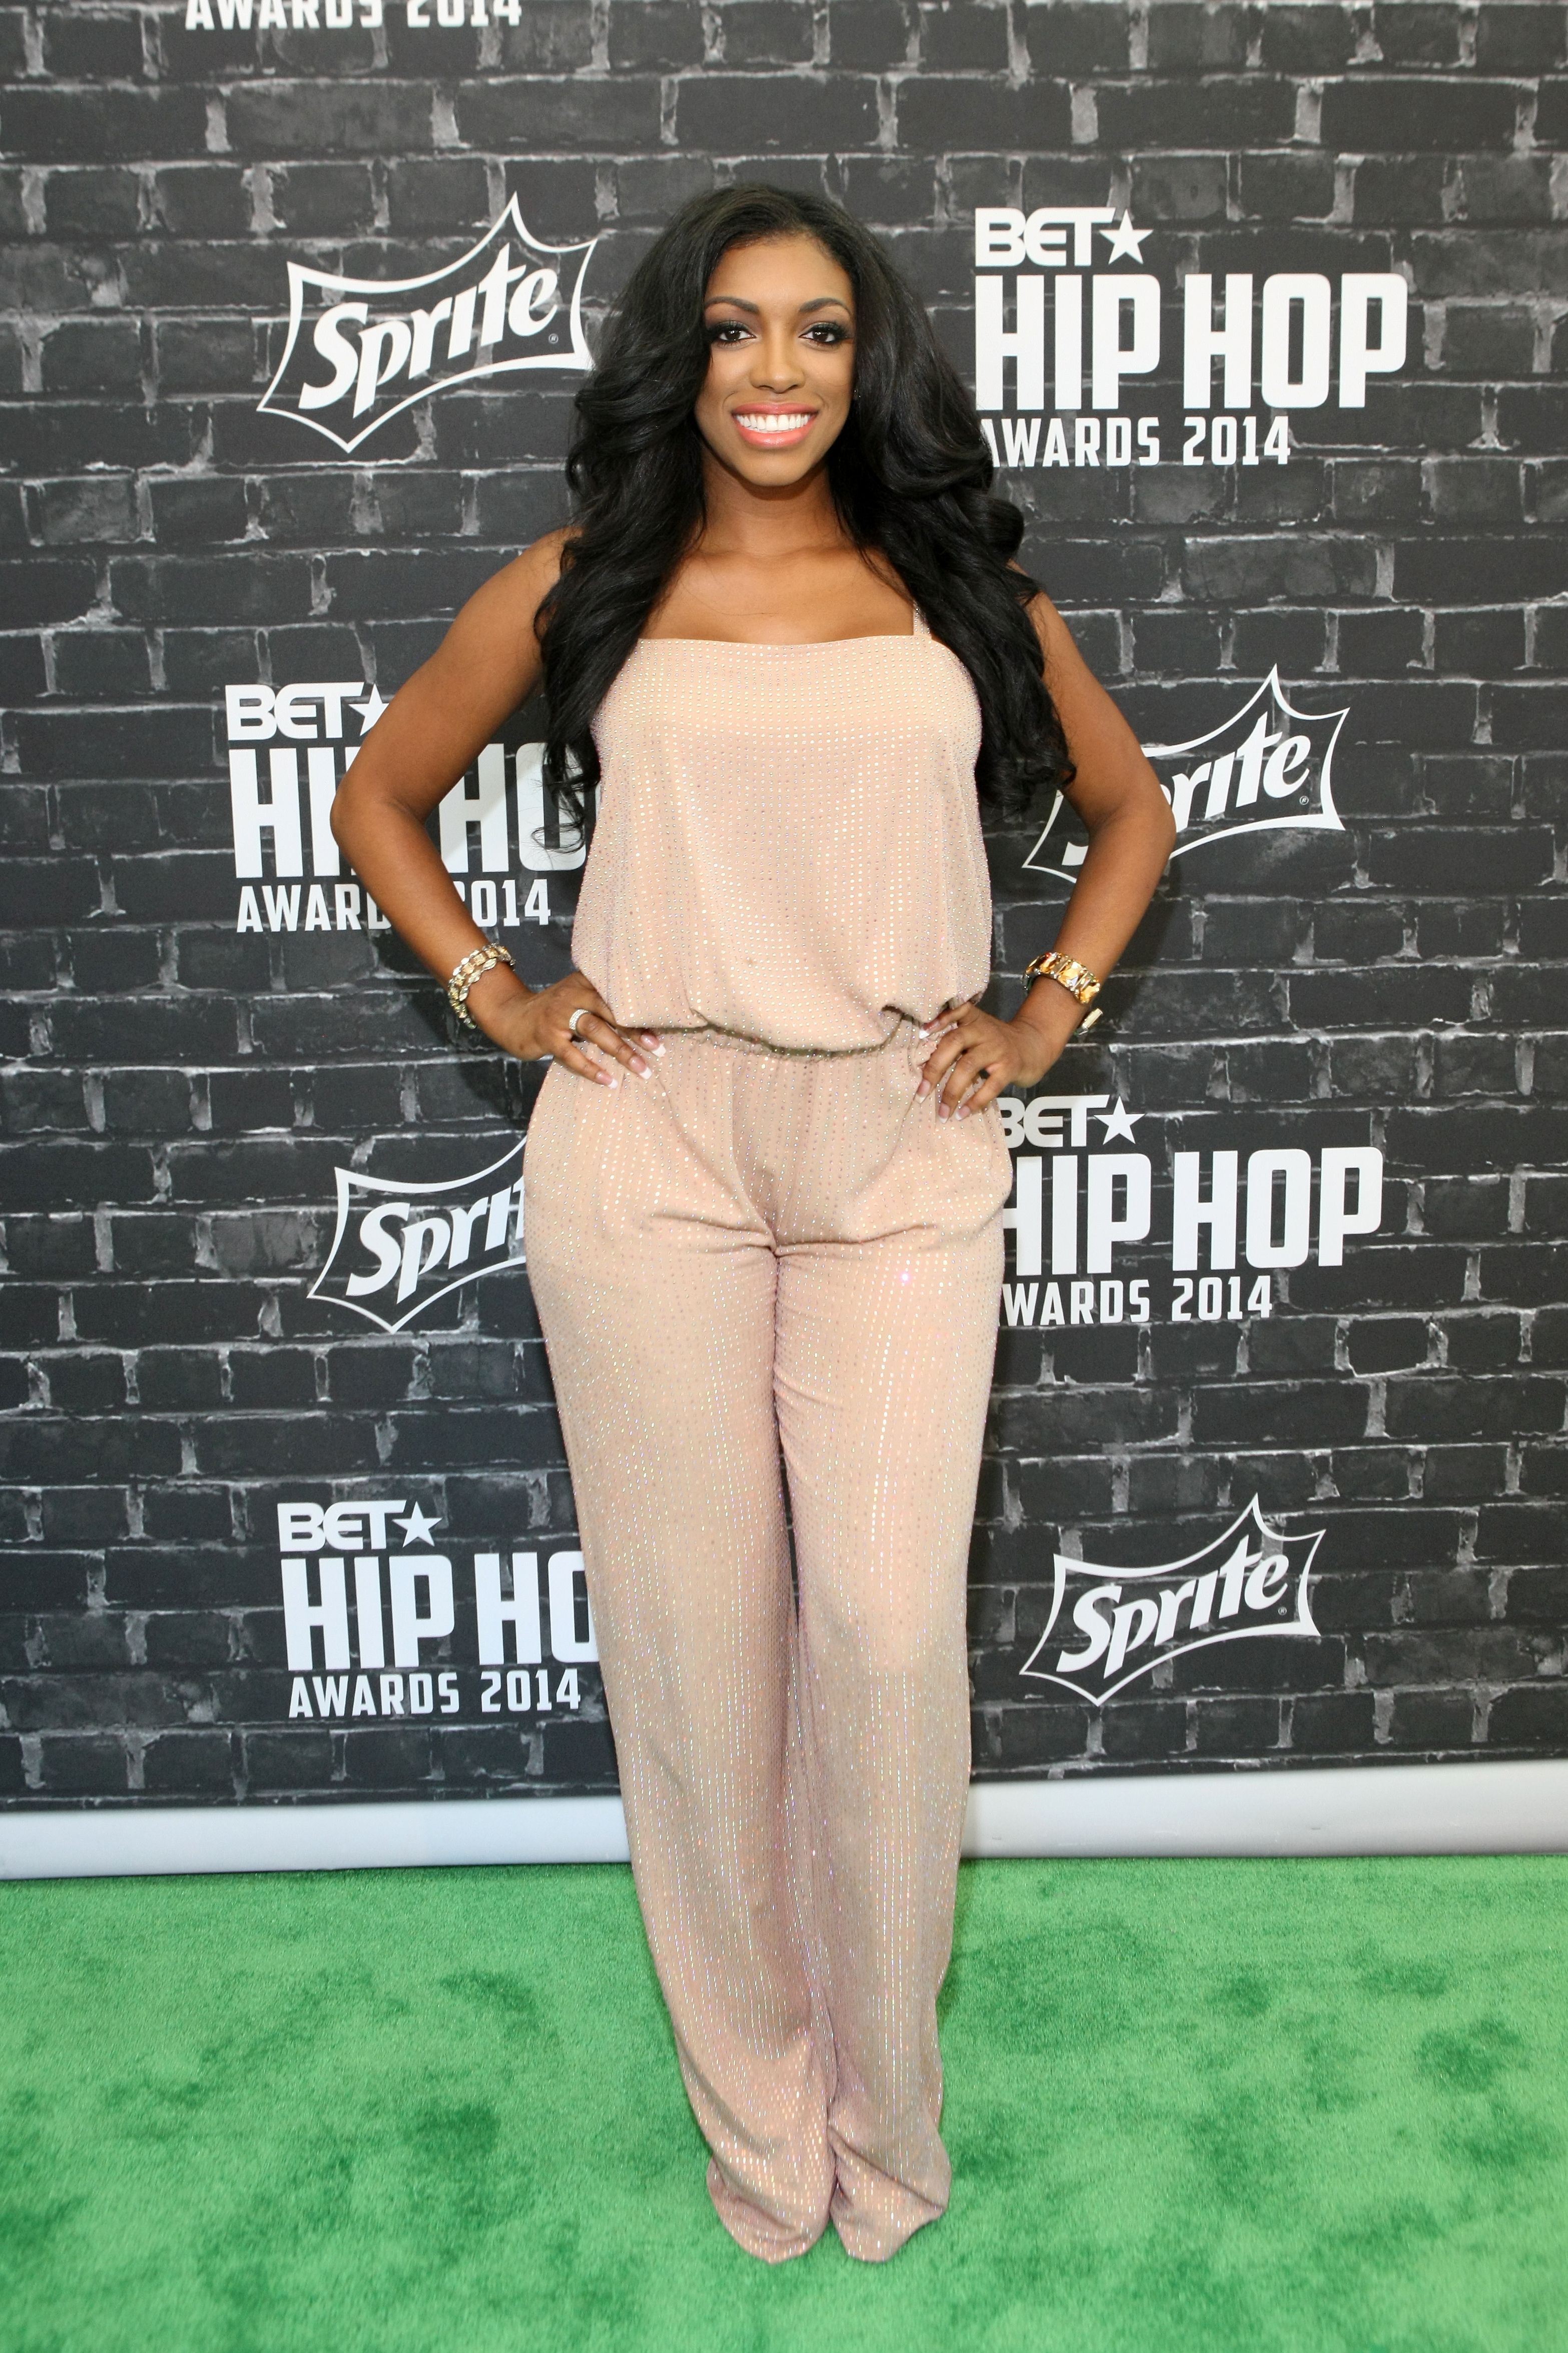 Porsha Williams during the BET Hip Hop Awards 2014 presented by Sprite at Boisfeuillet Jones Atlanta Civic Center on September 20, 2014 in Atlanta, Georgia.   Source: Getty Images